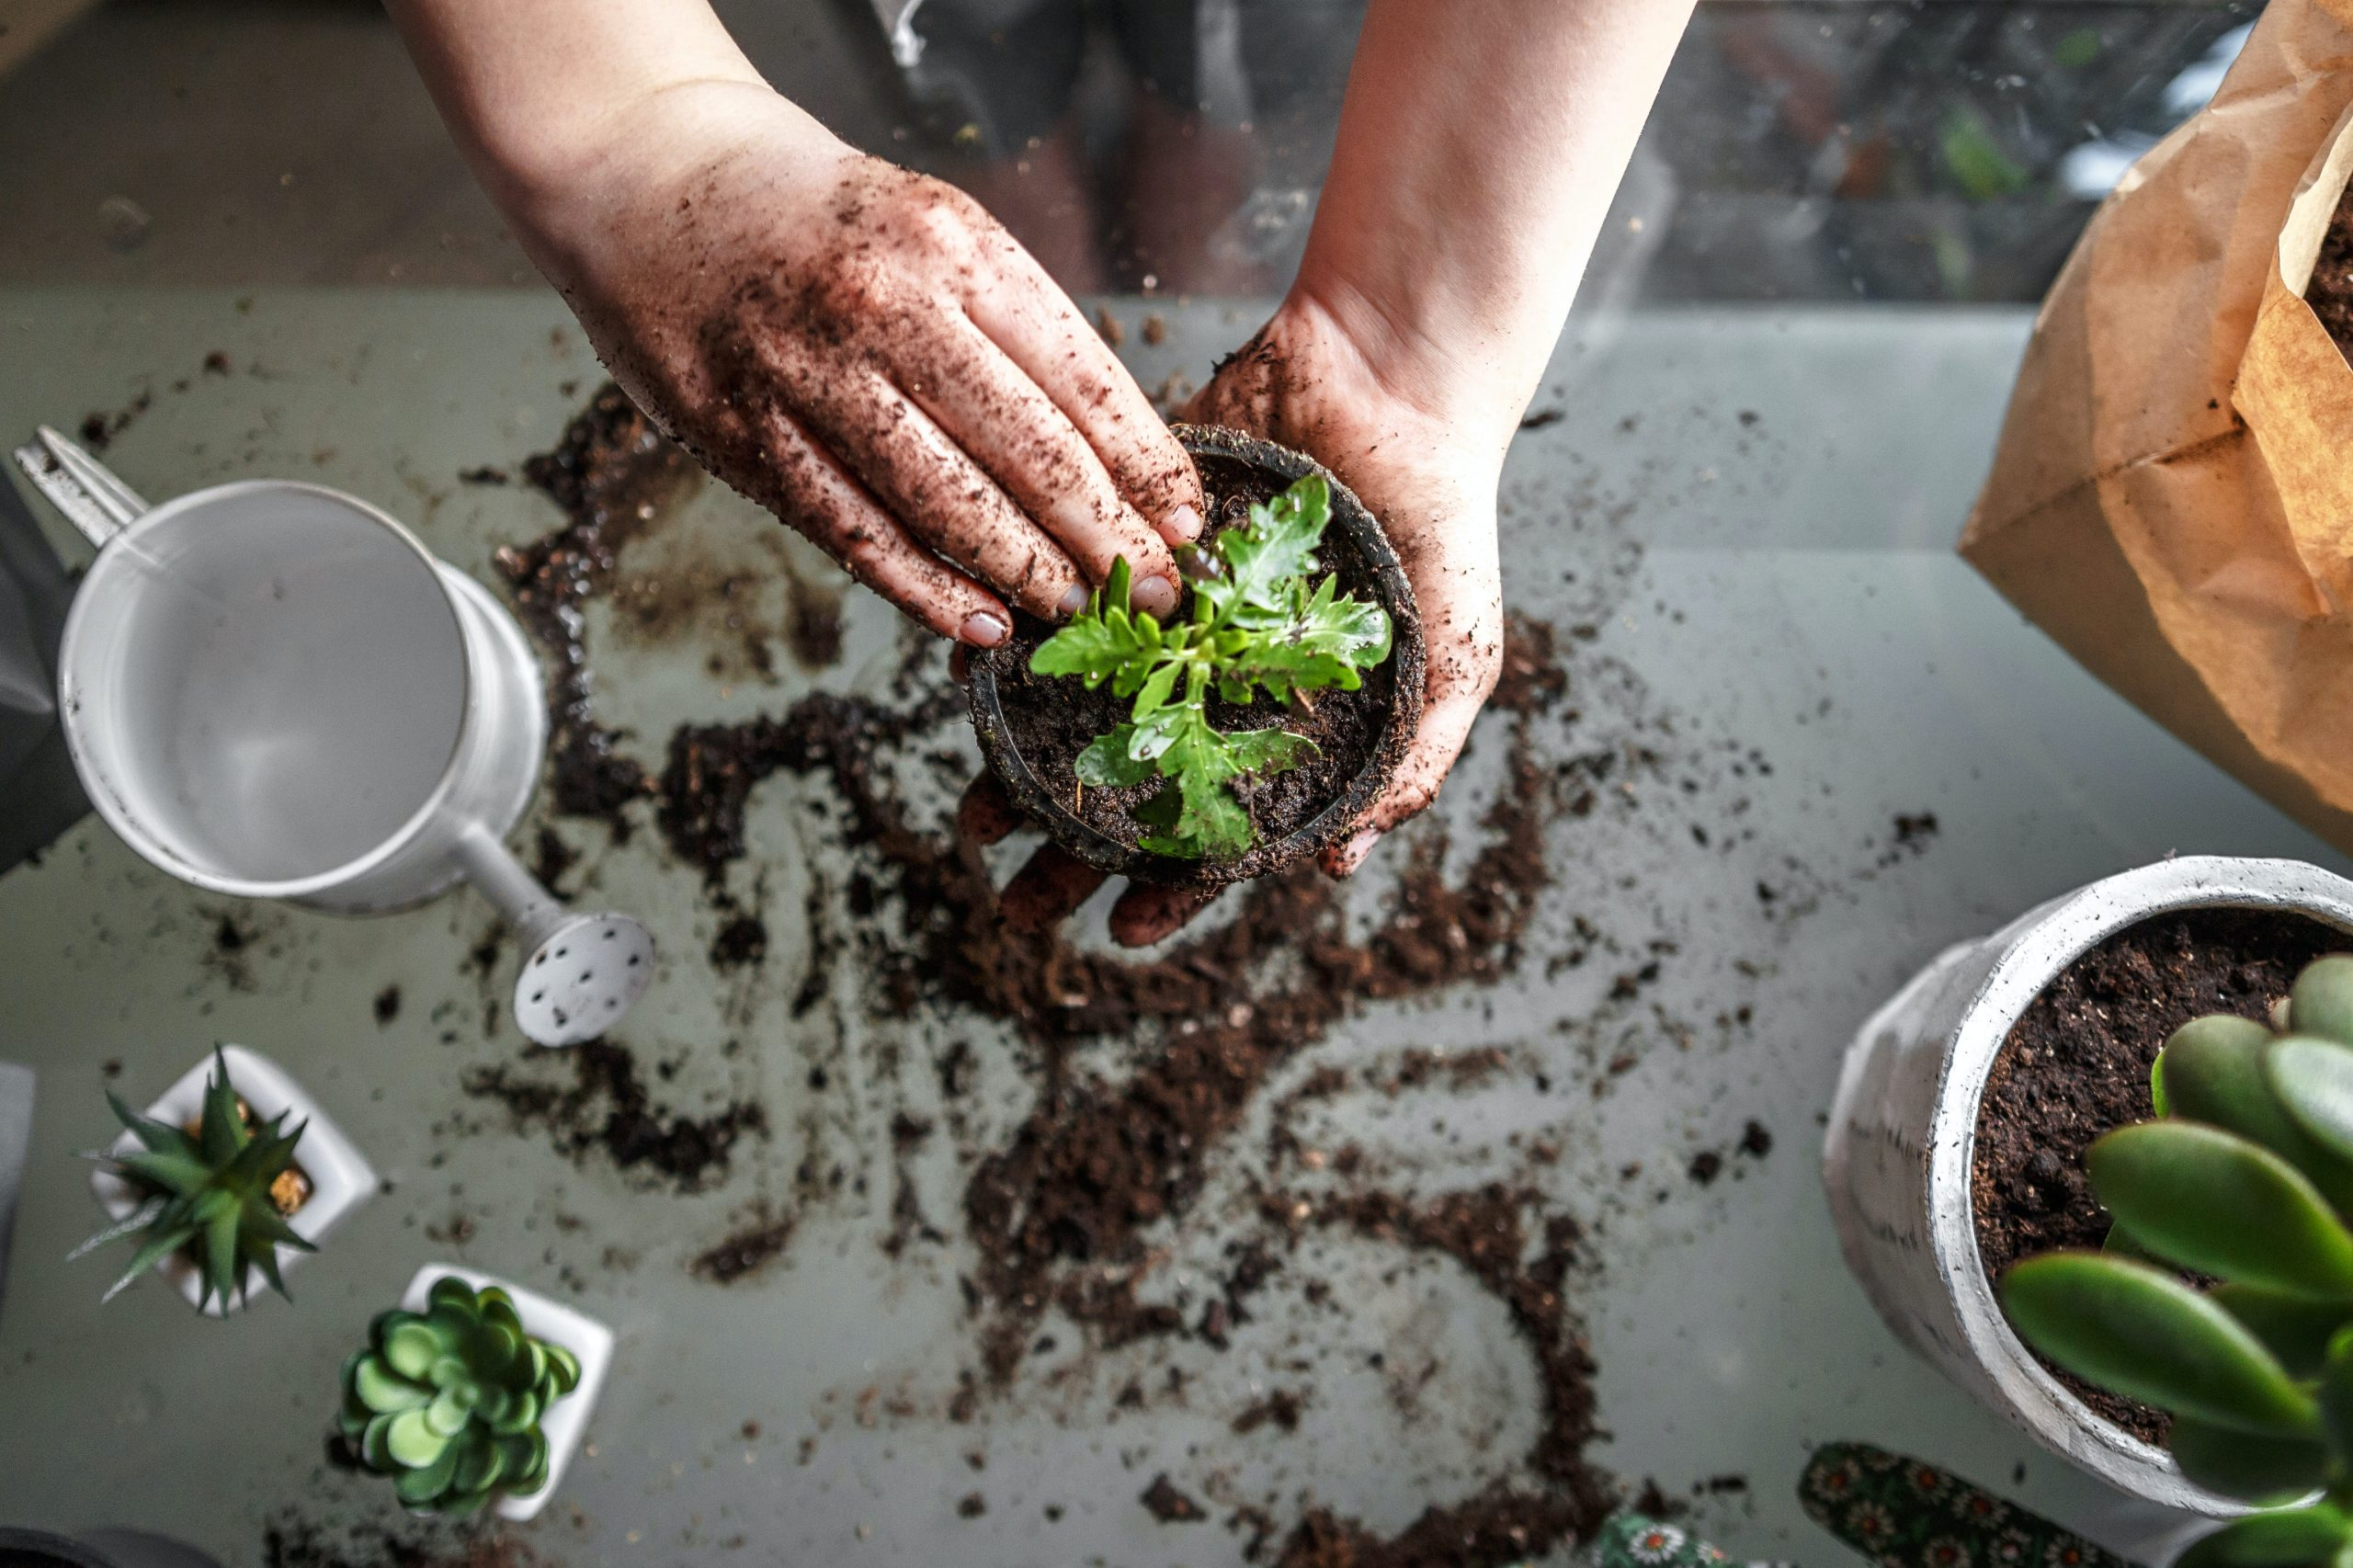 A person places a plant in a small pot with soil.